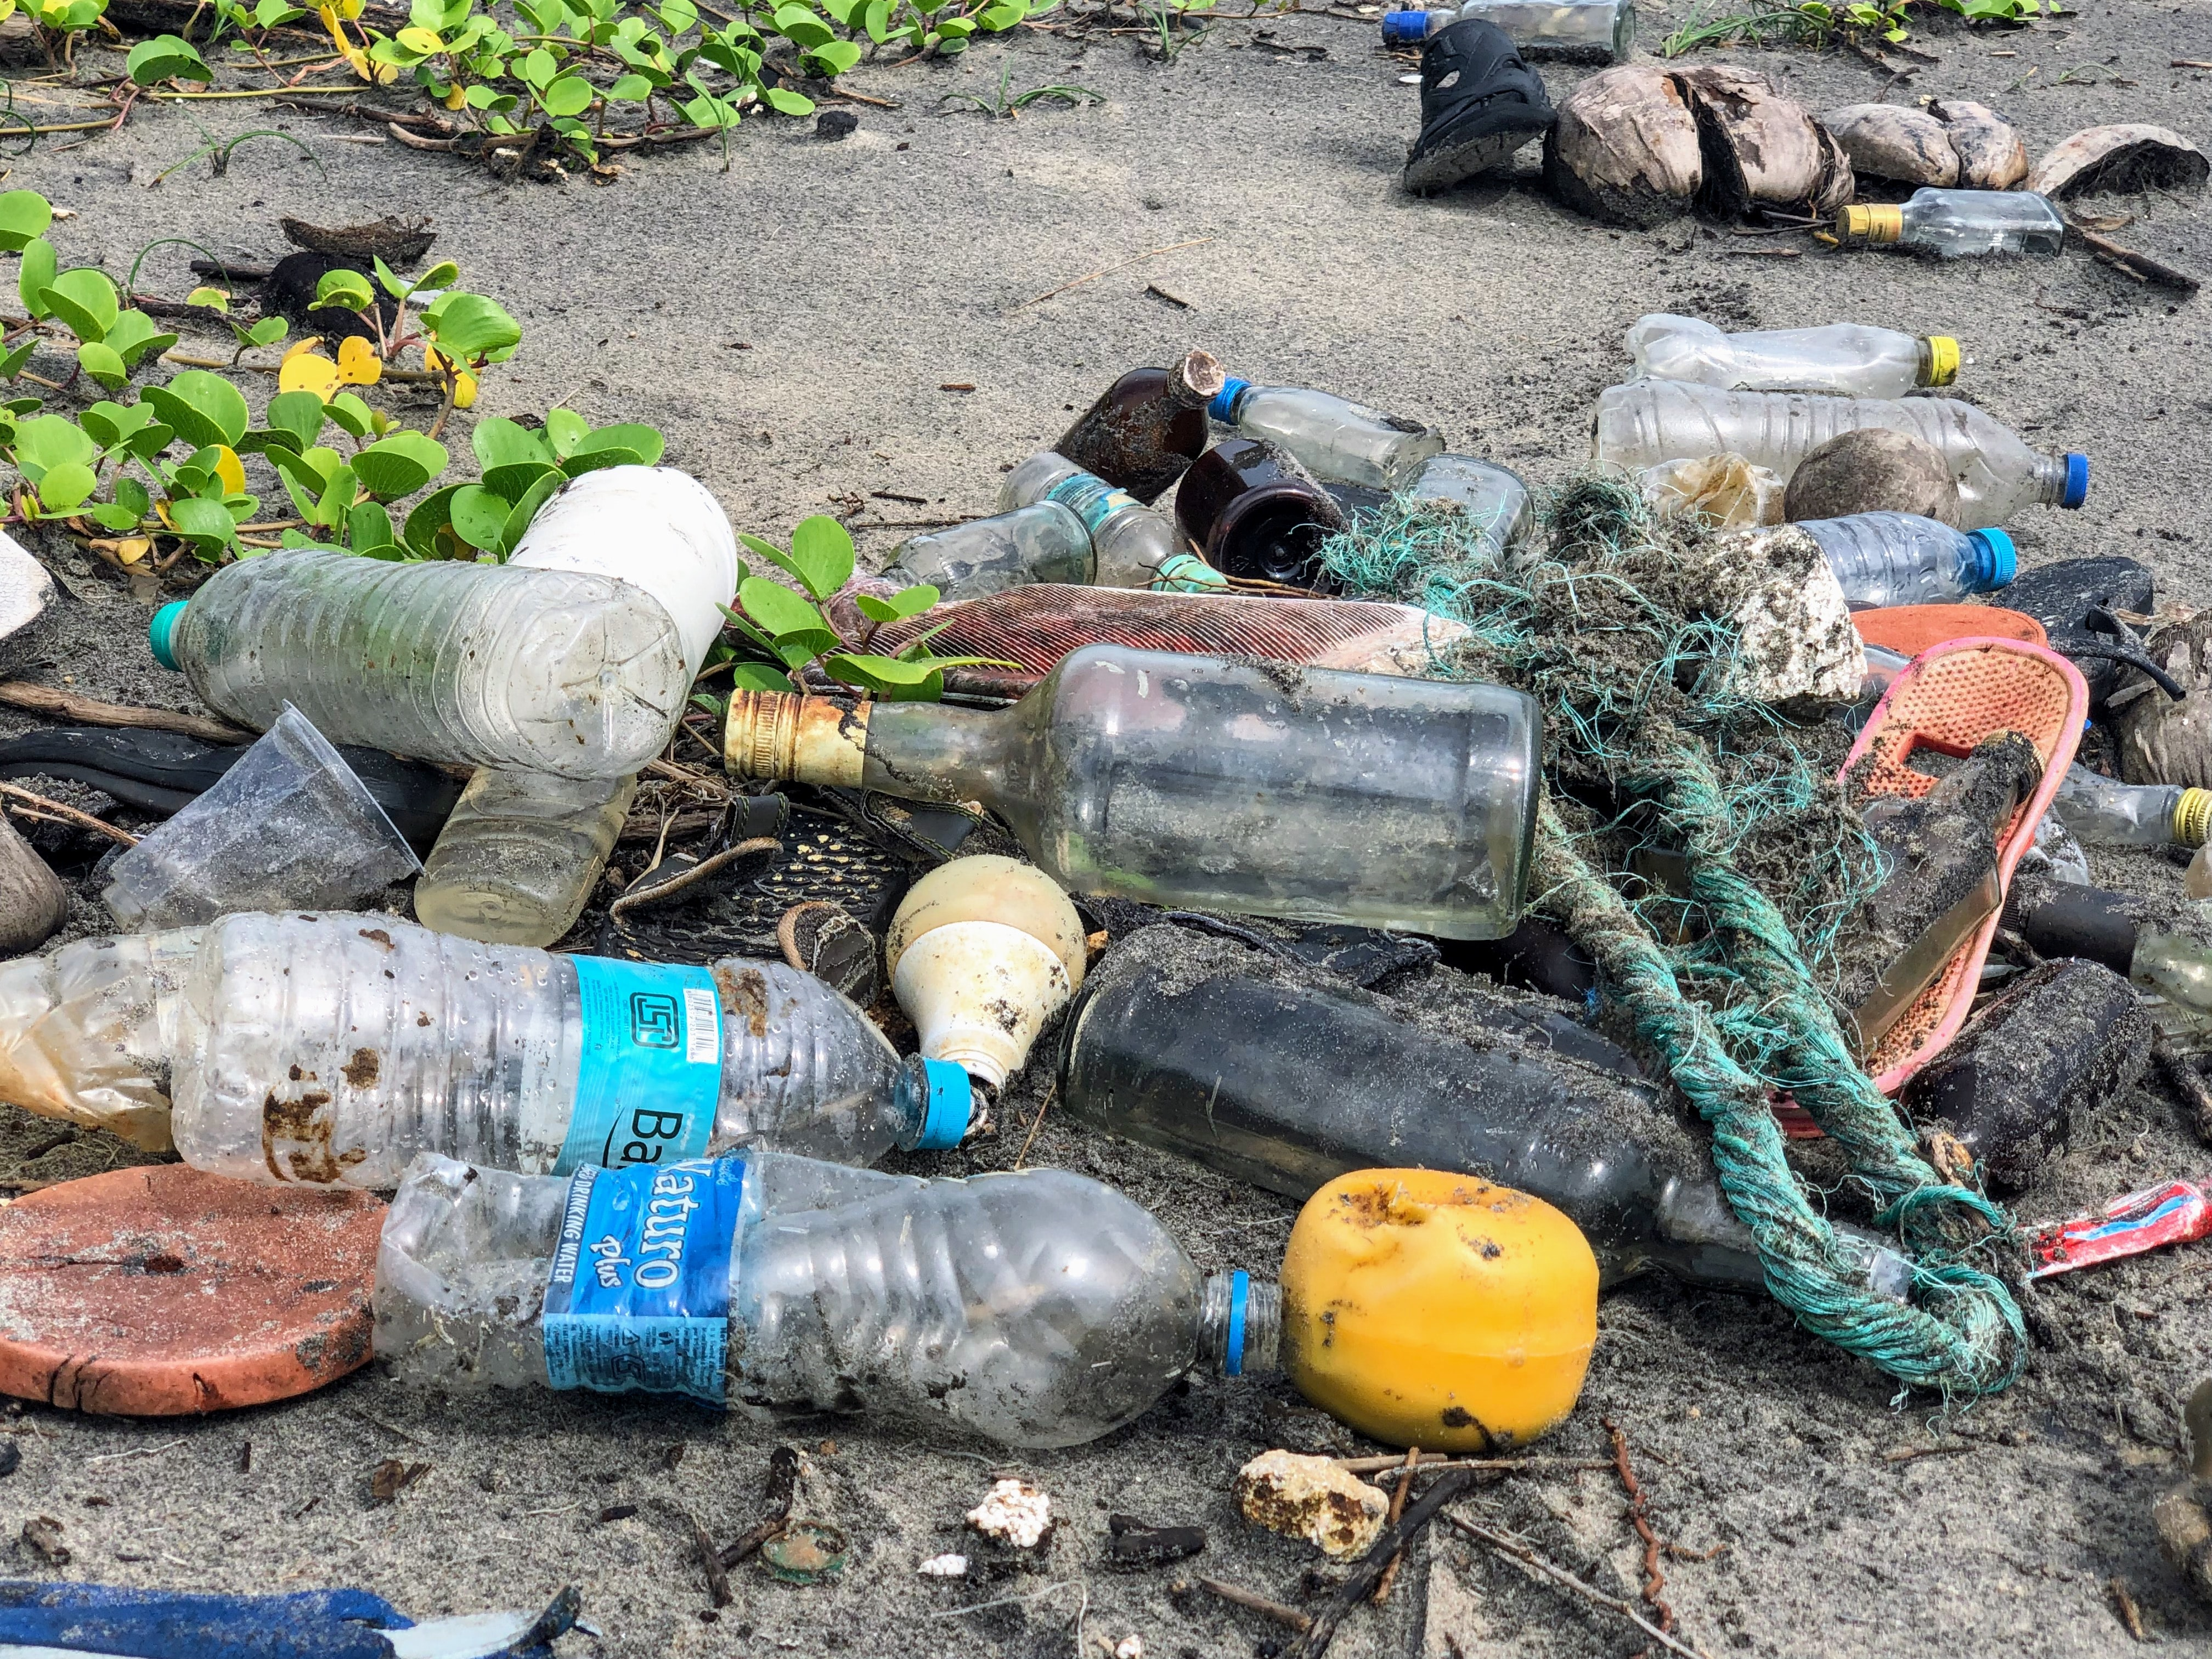 Nonprofits Fighting Plastic Pollution